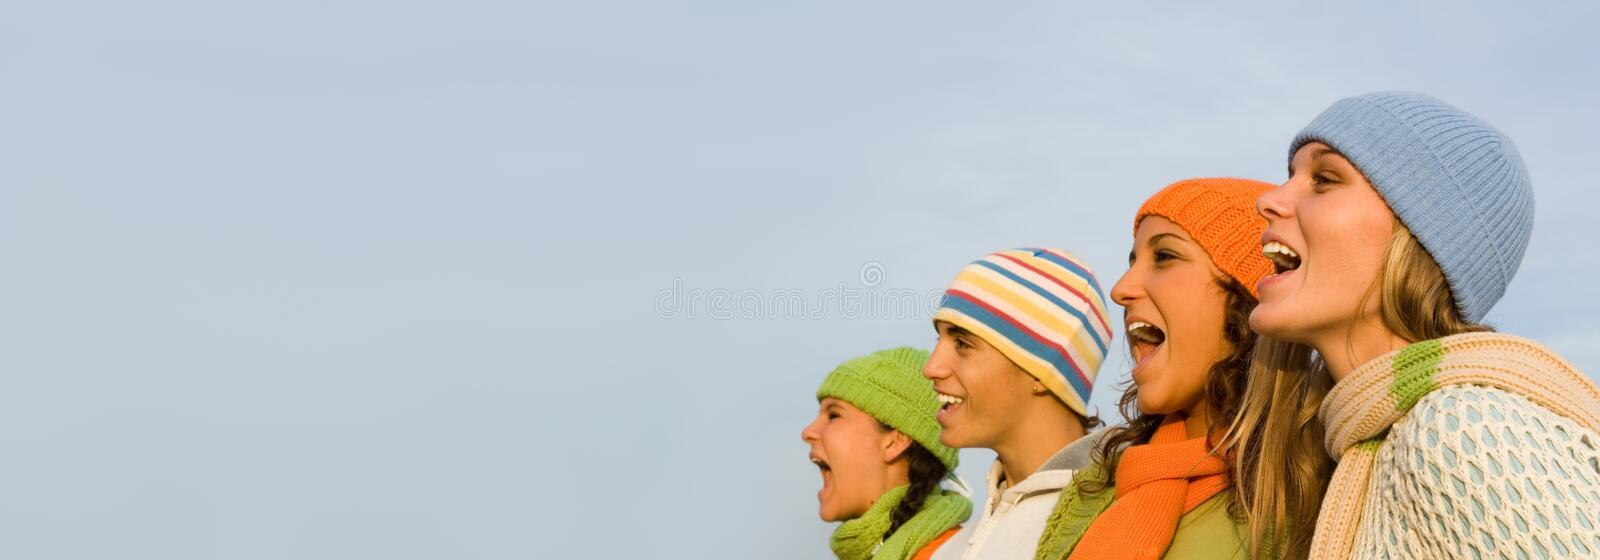 Download Happy group, smiling youth stock image. Image of spirit - 1465045